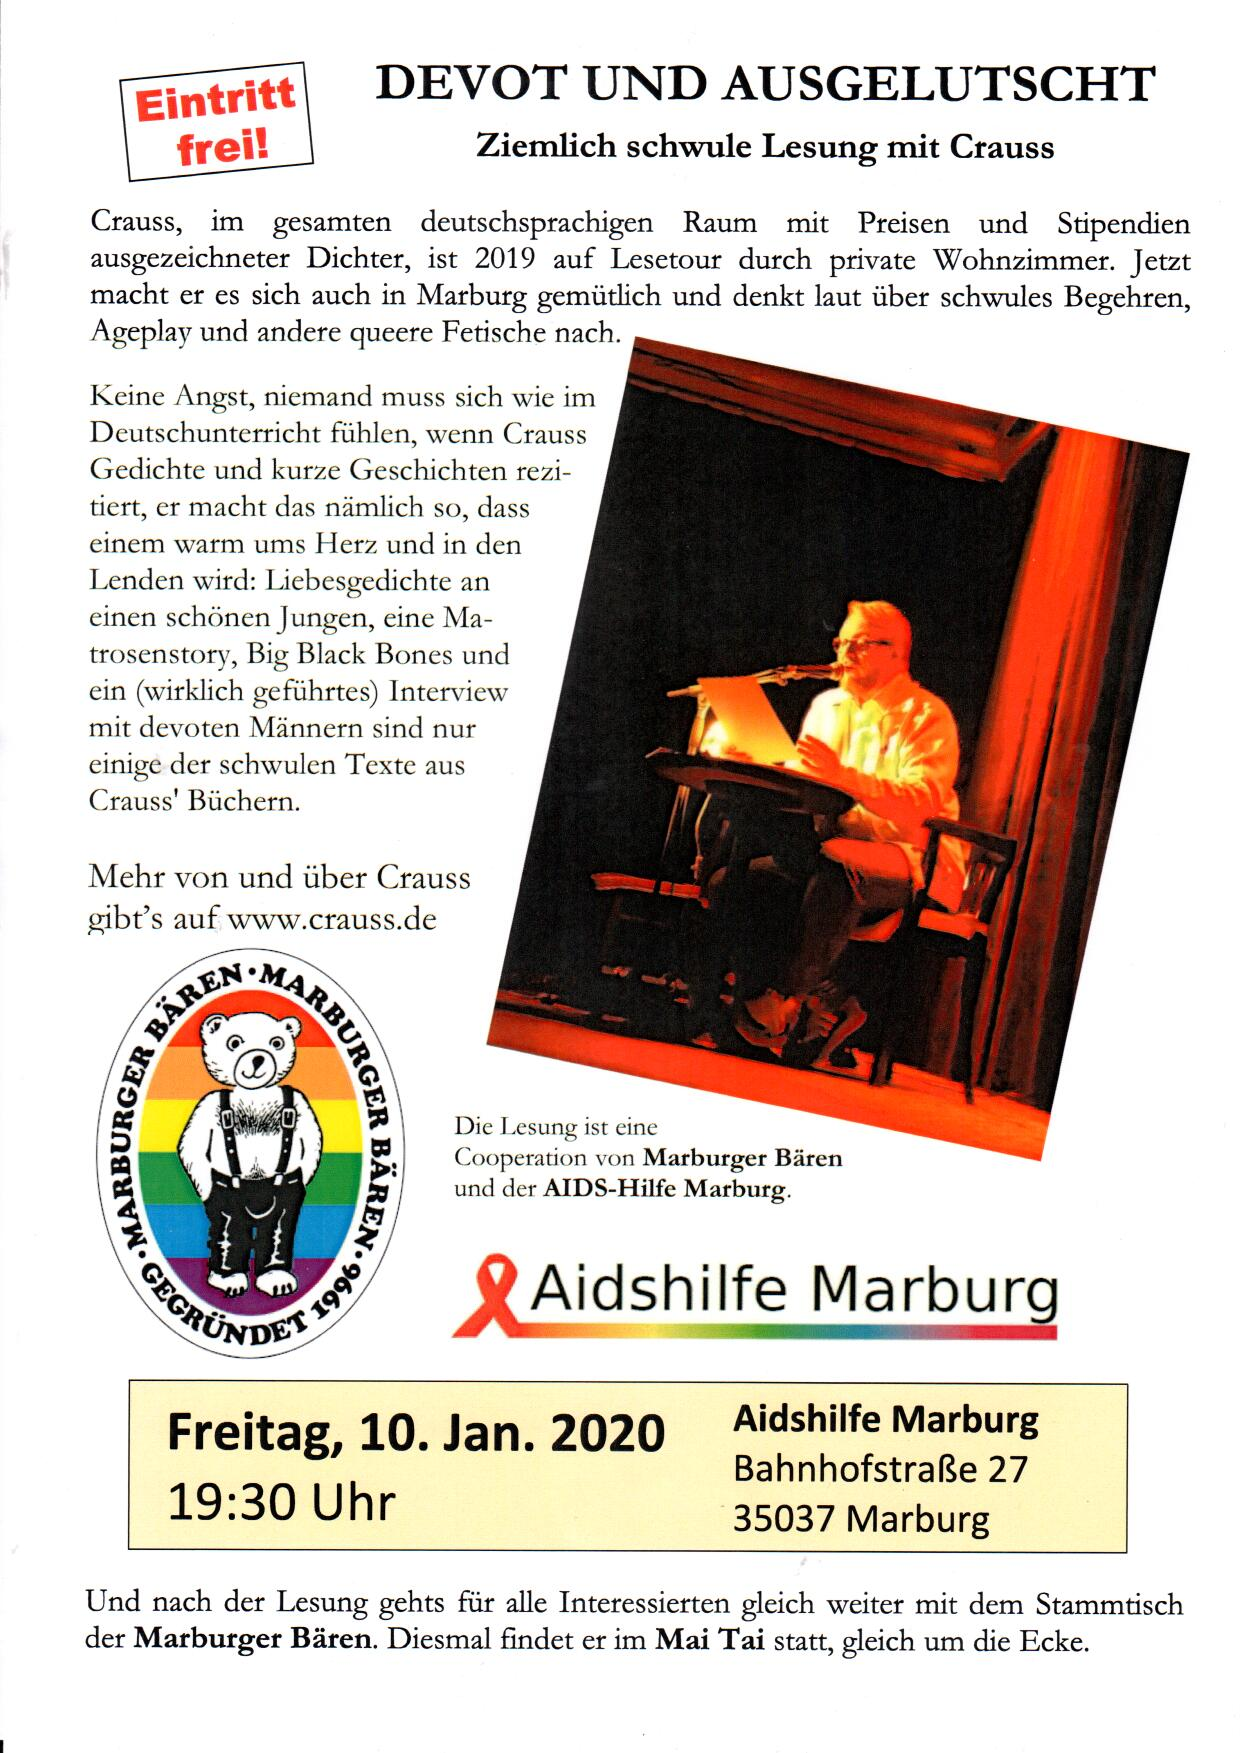 Crauss in Marburg